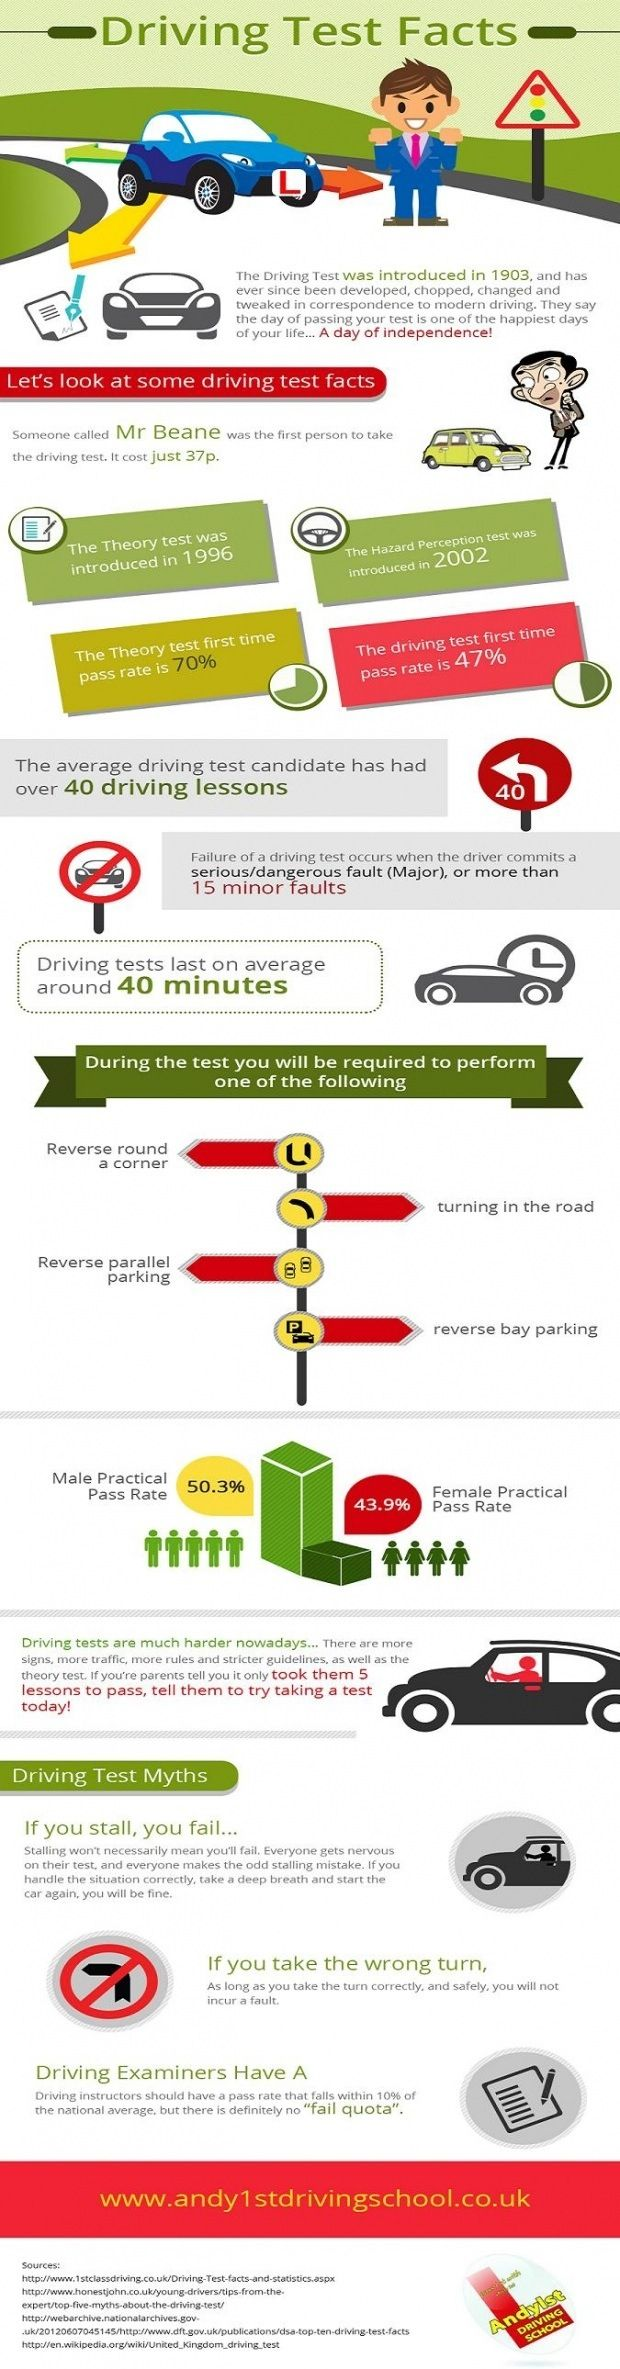 Driving test facts